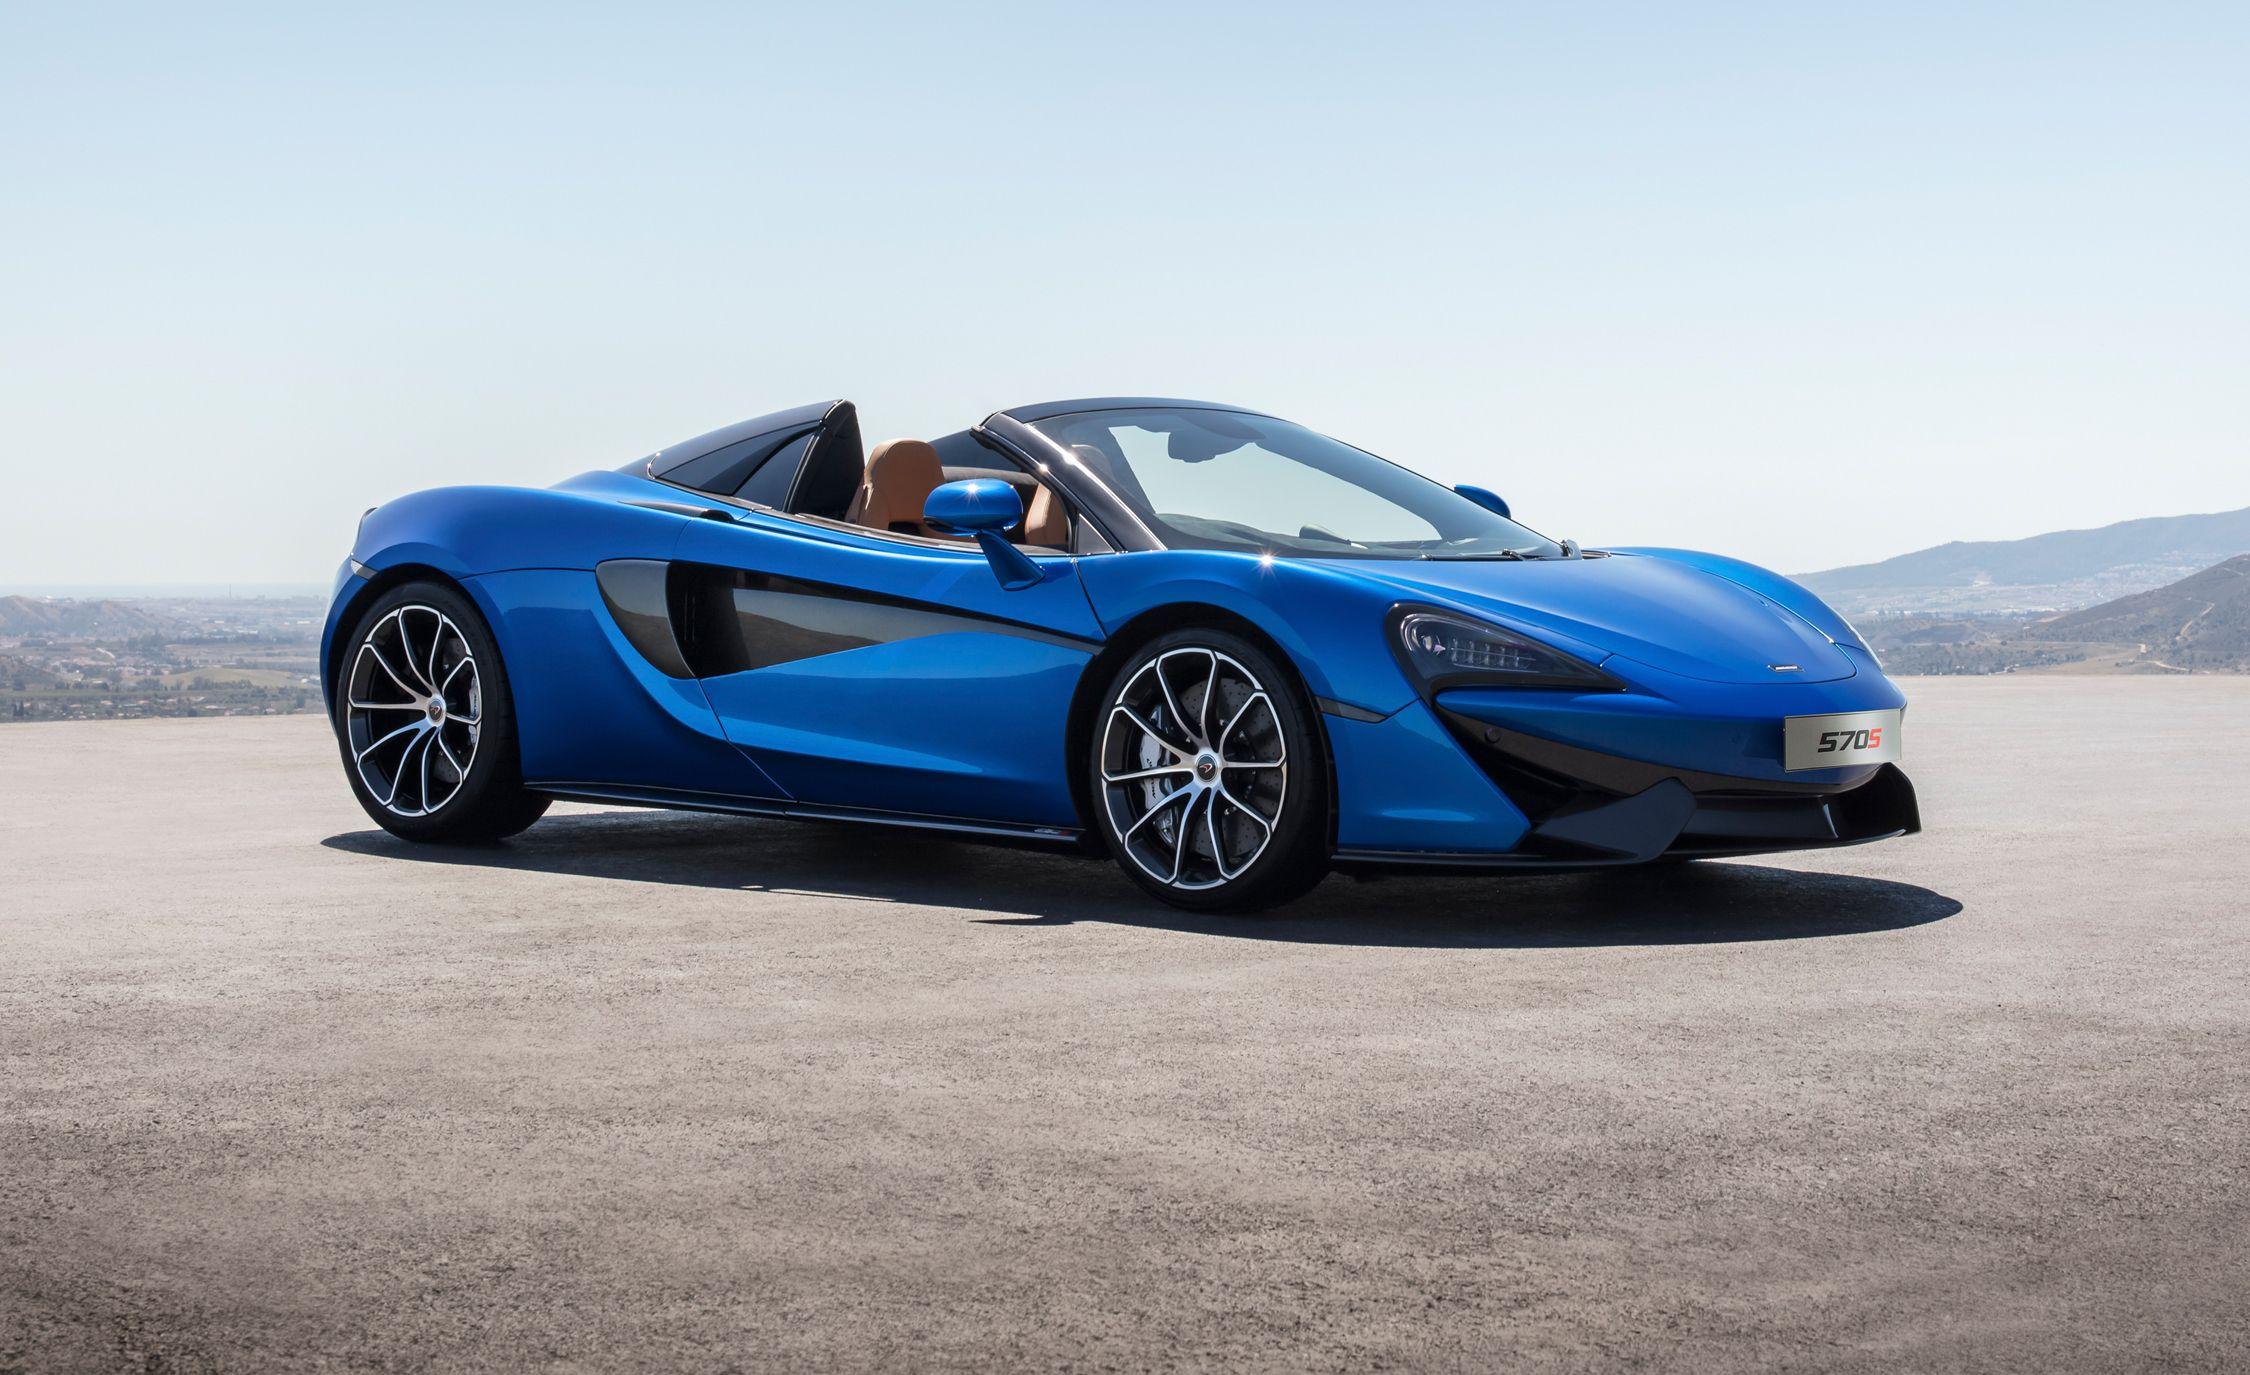 2018 McLaren 570S Spider Photos and Info | News | Car and ...